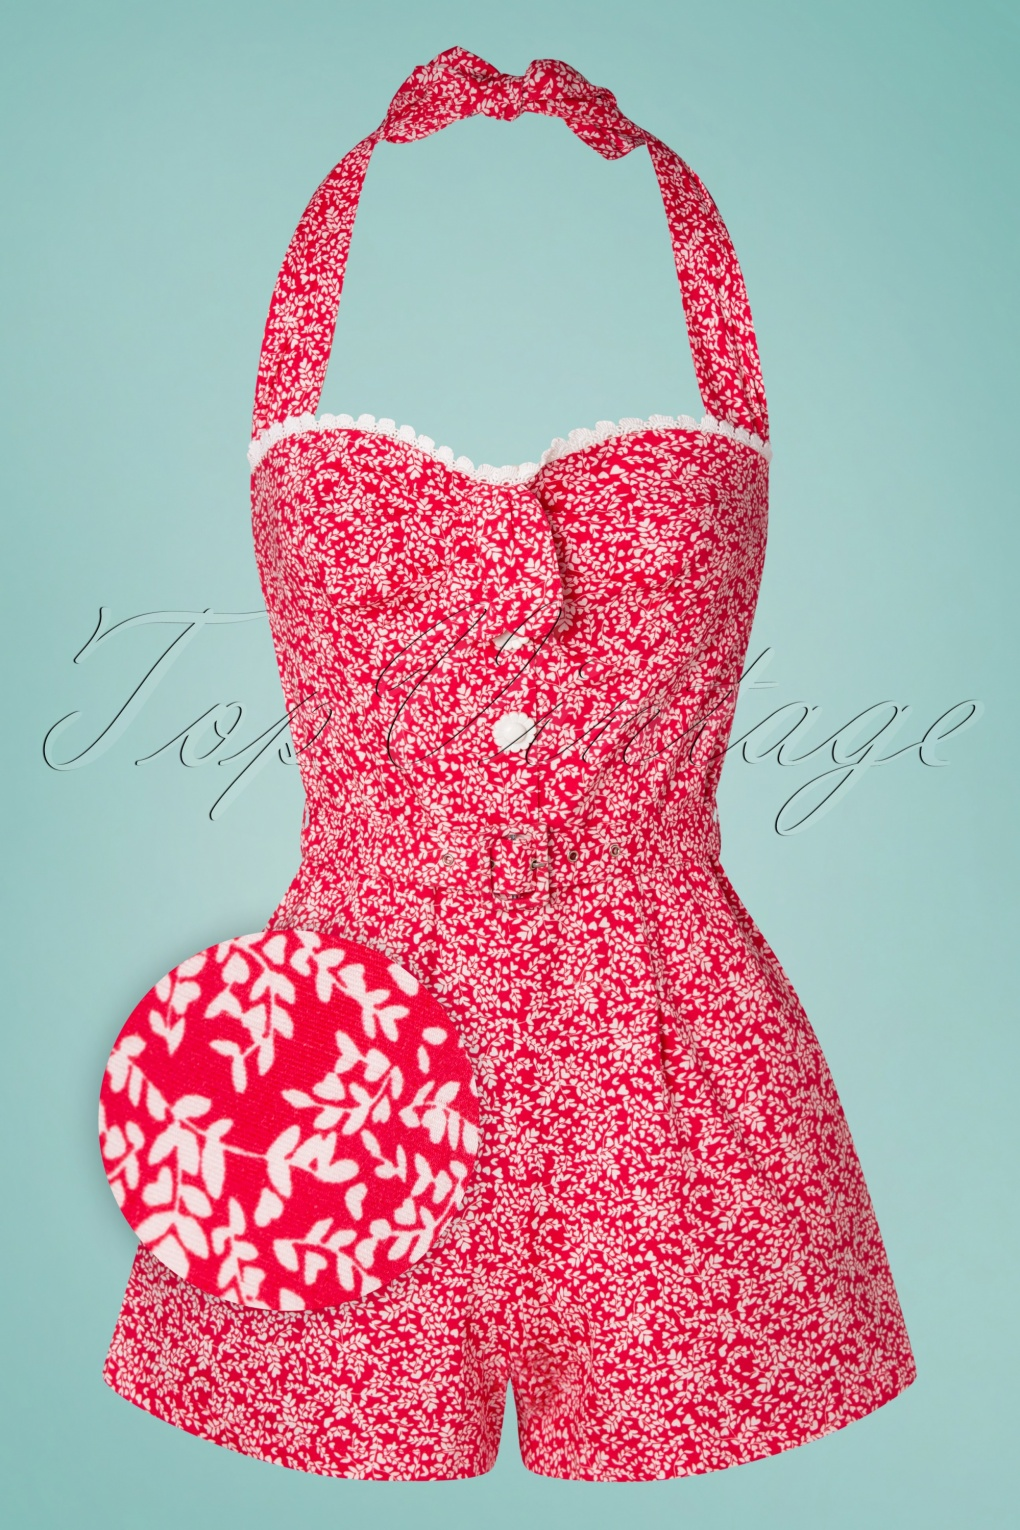 40s-50s Vintage Playsuits, Jumpsuits, Rompers History 50s Lin Hearts Playsuit in Raspberry Red £24.95 AT vintagedancer.com